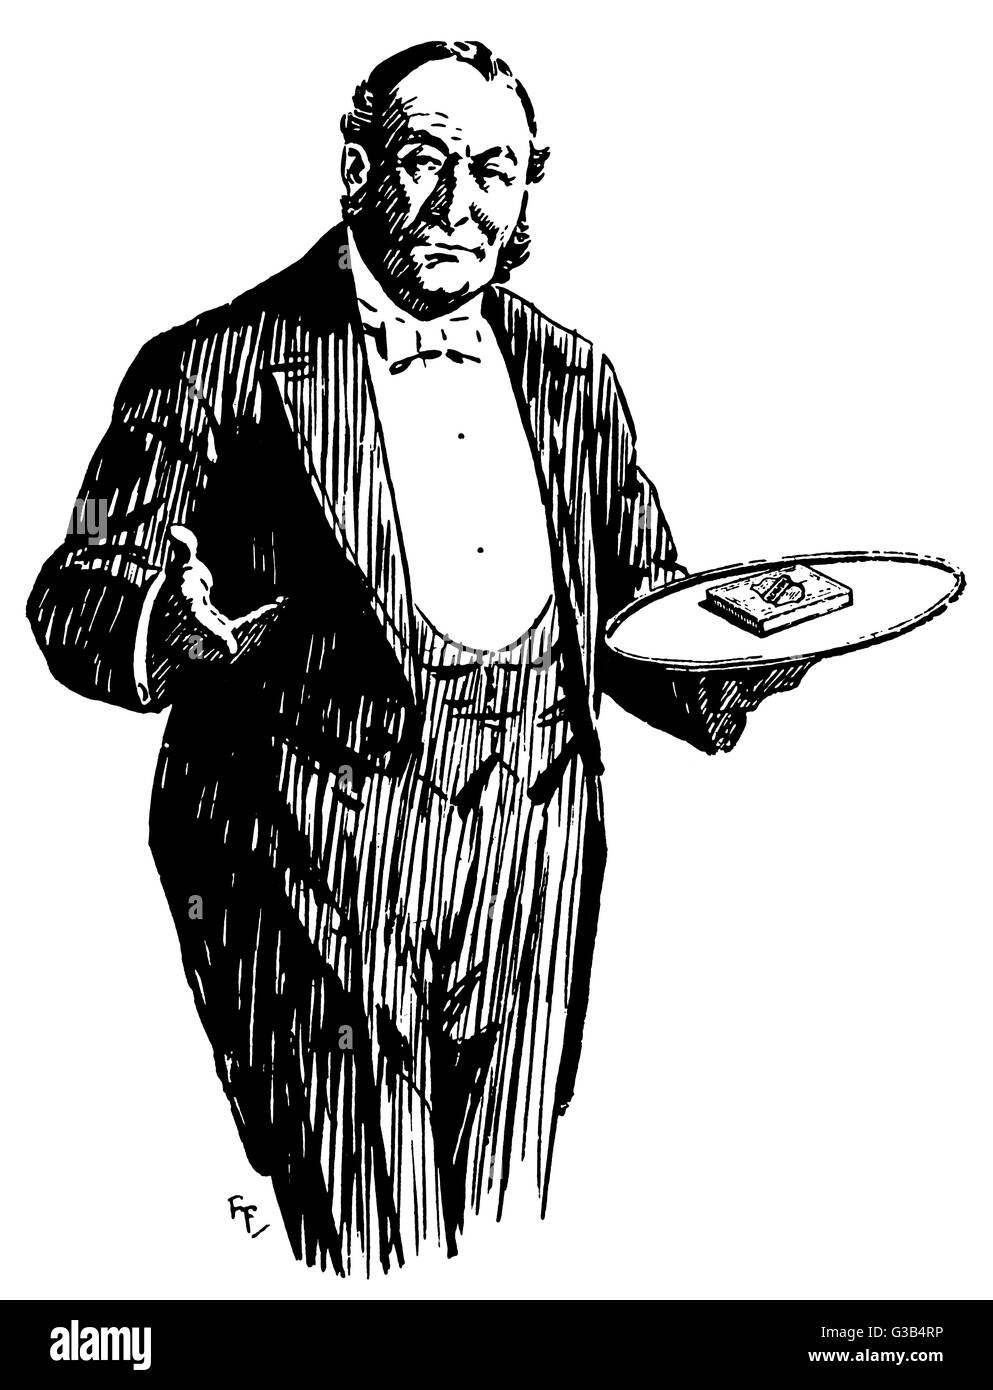 The butler brings a packet  of cigarettes on a tray         Date: circa 1935 - Stock Image